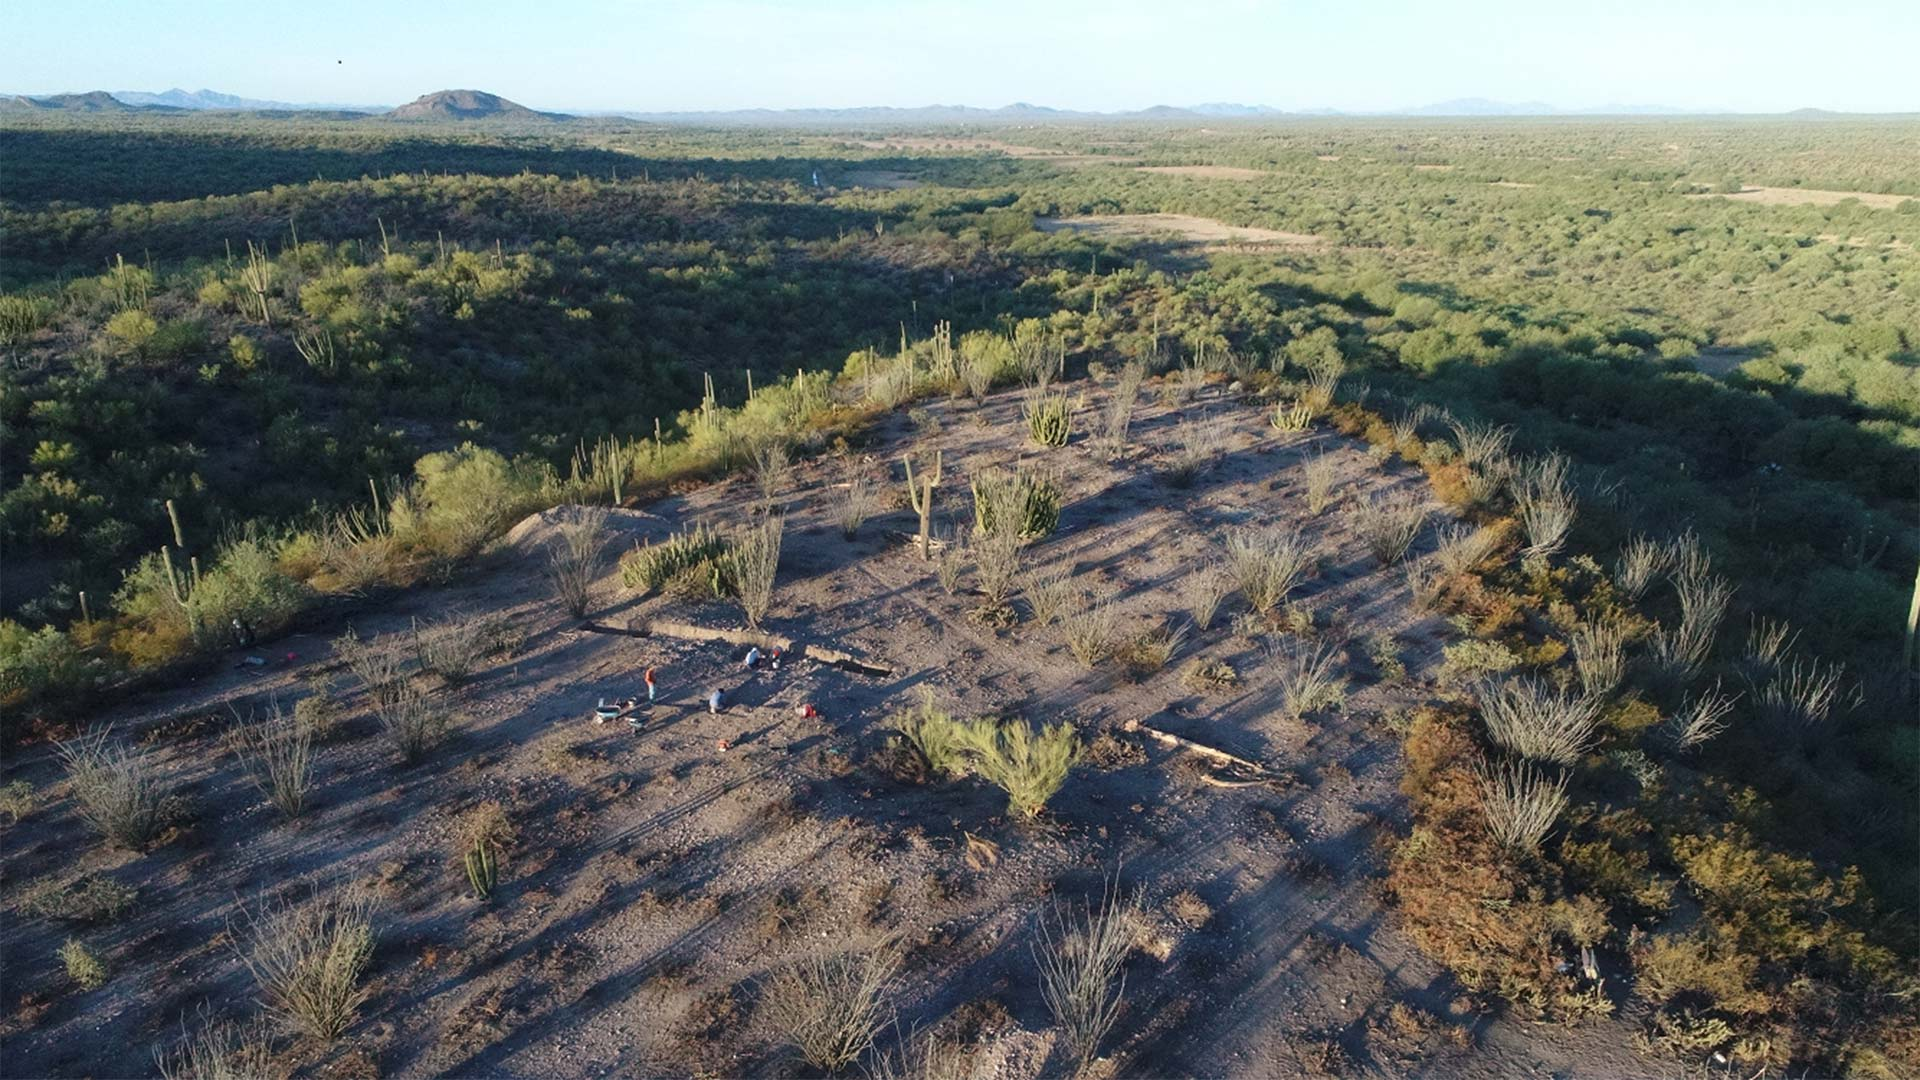 Archaeologists from the U.S. and Mexico explore several ancient sites near the Arizona-Sonora border.